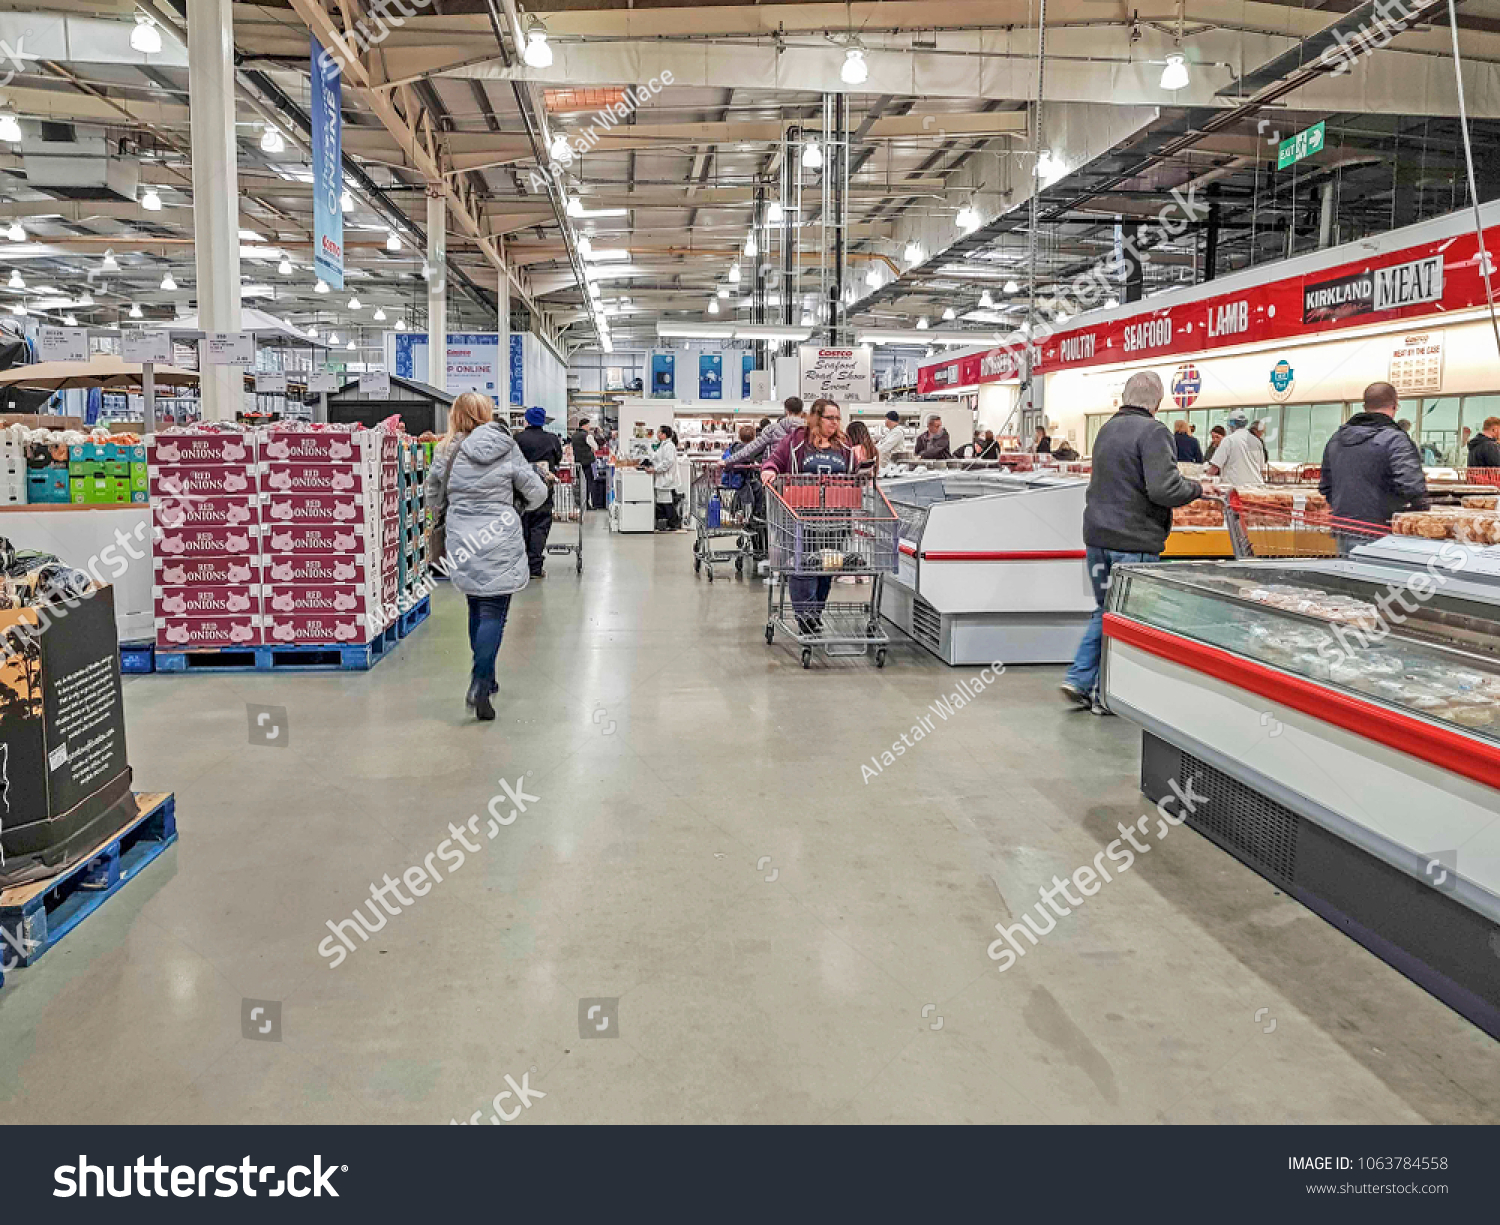 Costco Montreal Downtown Manchester Uk April 7 2018 Interior Stock Photo Edit Now